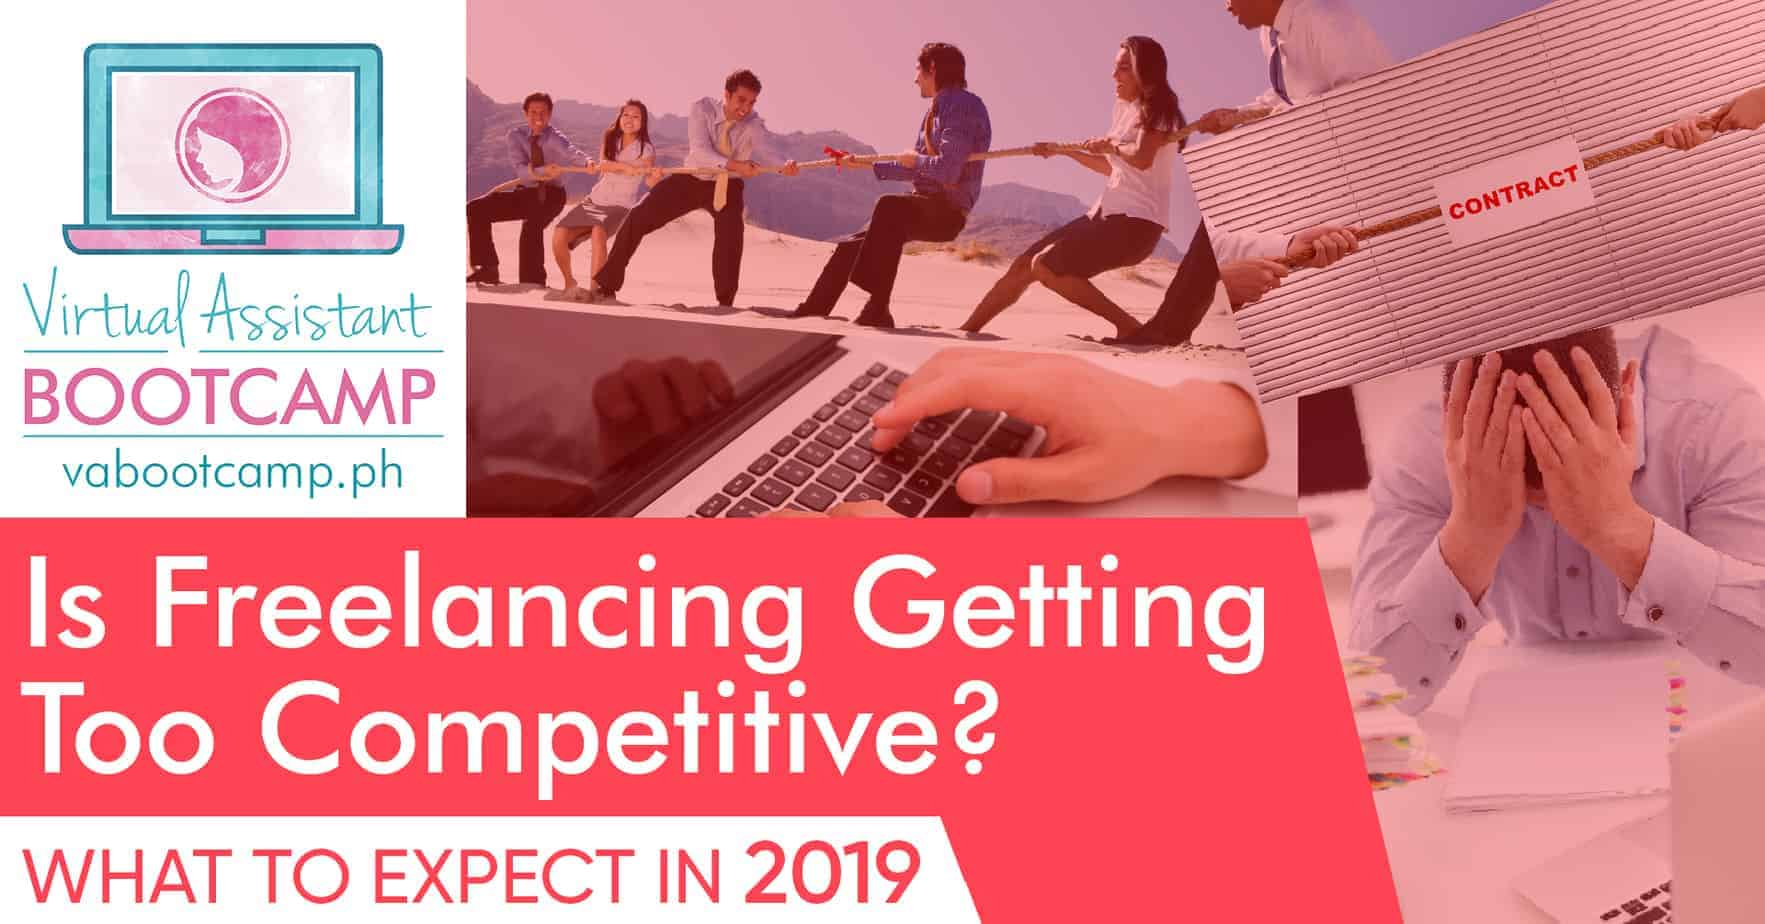 Is Freelancing Getting Too Competitive? What to Expect in 2019